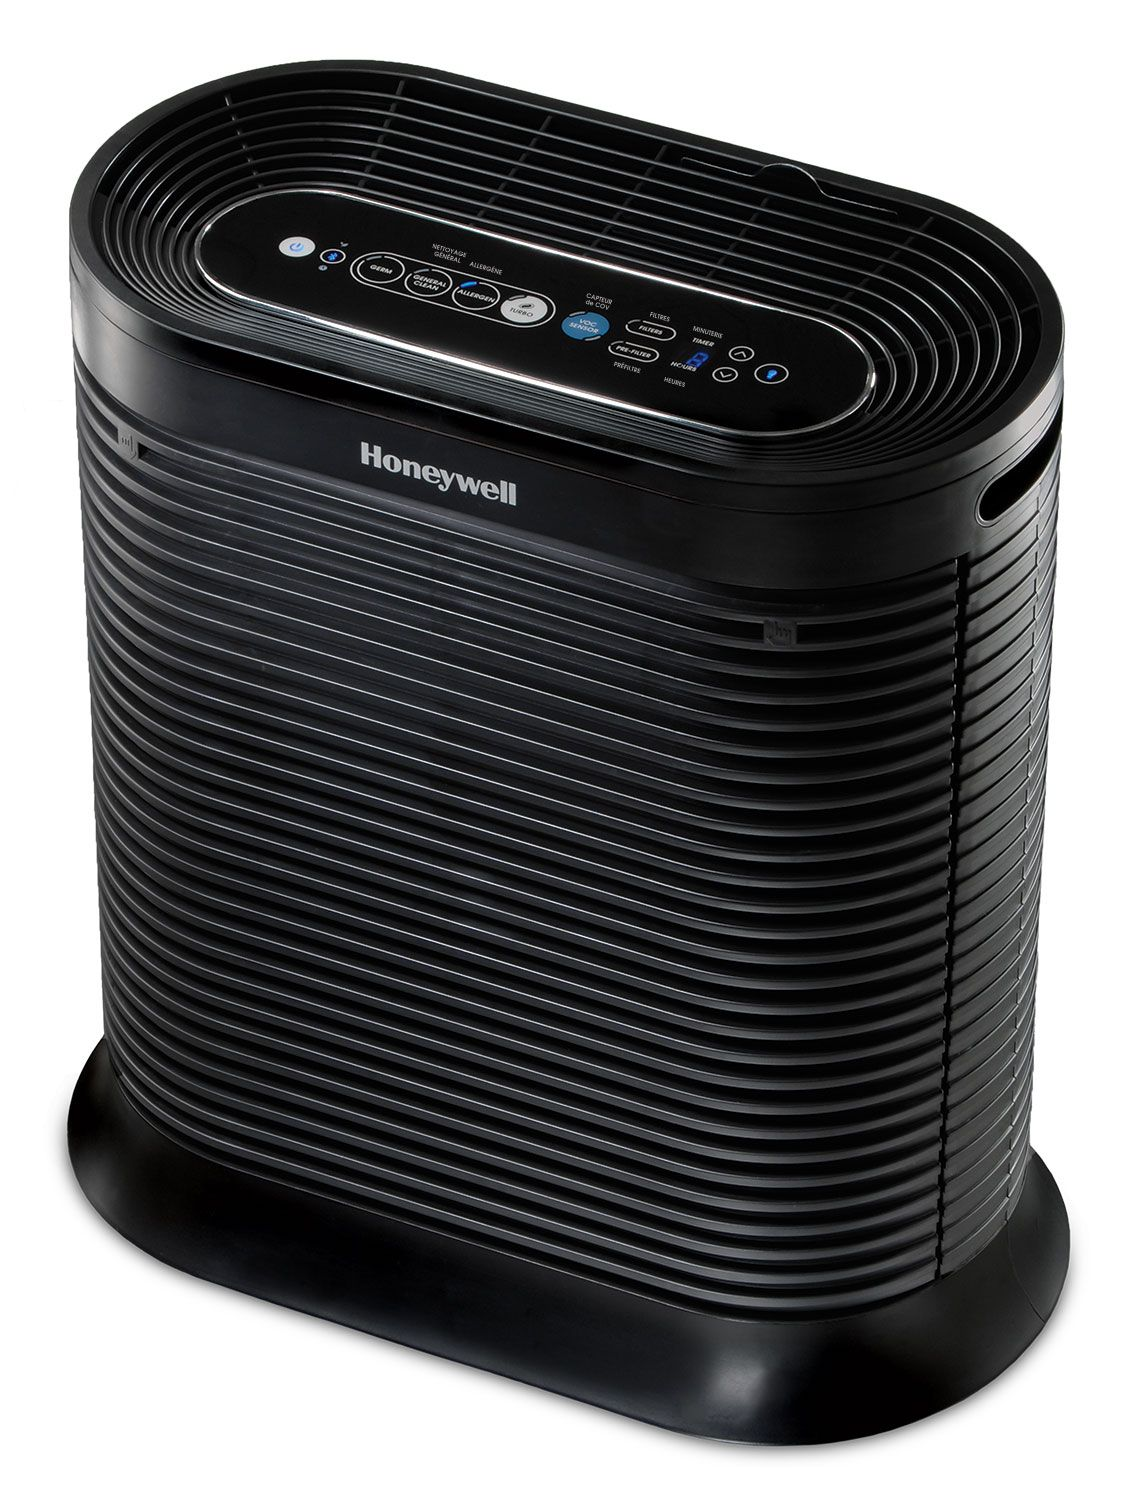 Honeywell Bluetooth Smart True Hepa Allergen Remover Reduces Up To 99 9 Of Certain Viruses Bacteria And Mold Hpa250b Black Walmart Com In 2020 Hepa Air Purifier Hepa Honeywell Air Purifier